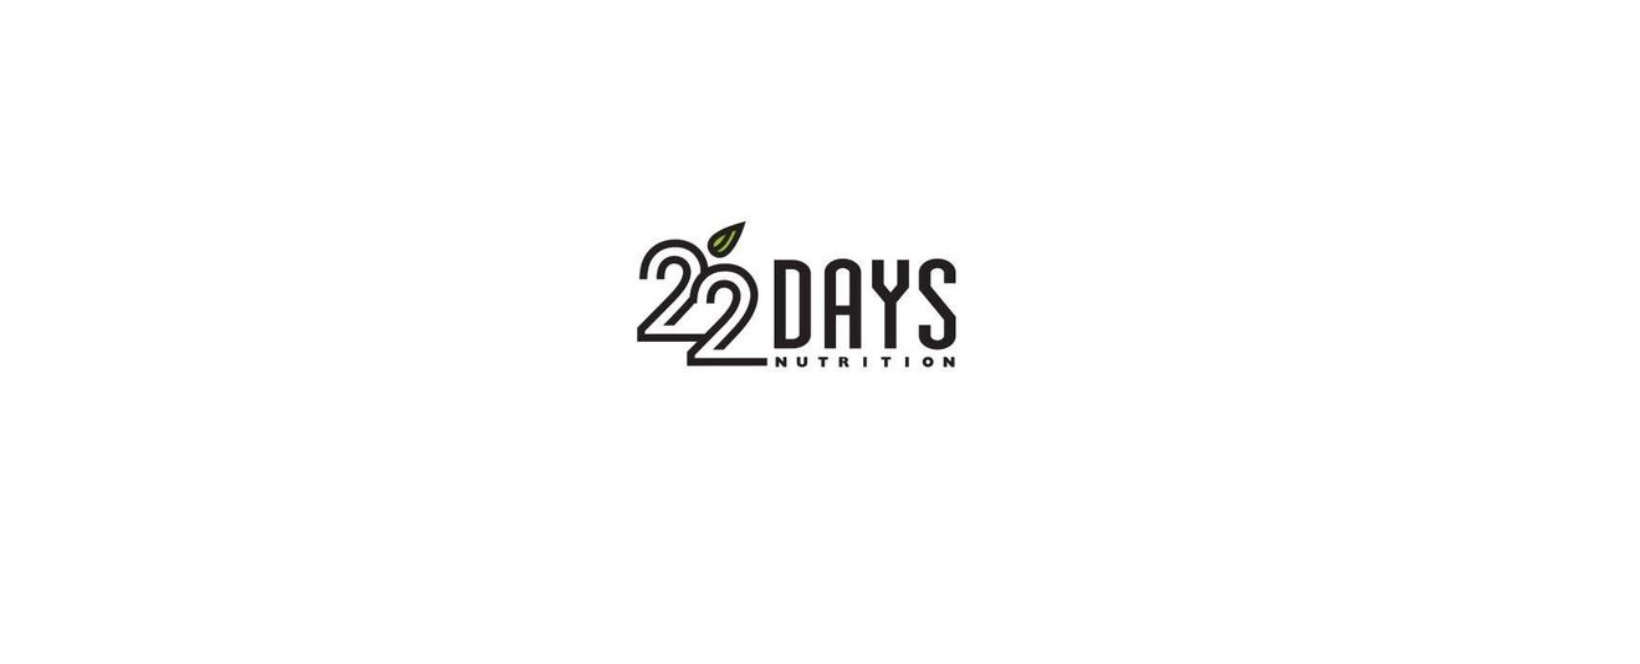 22 Days Nutrition Discount Code 2021